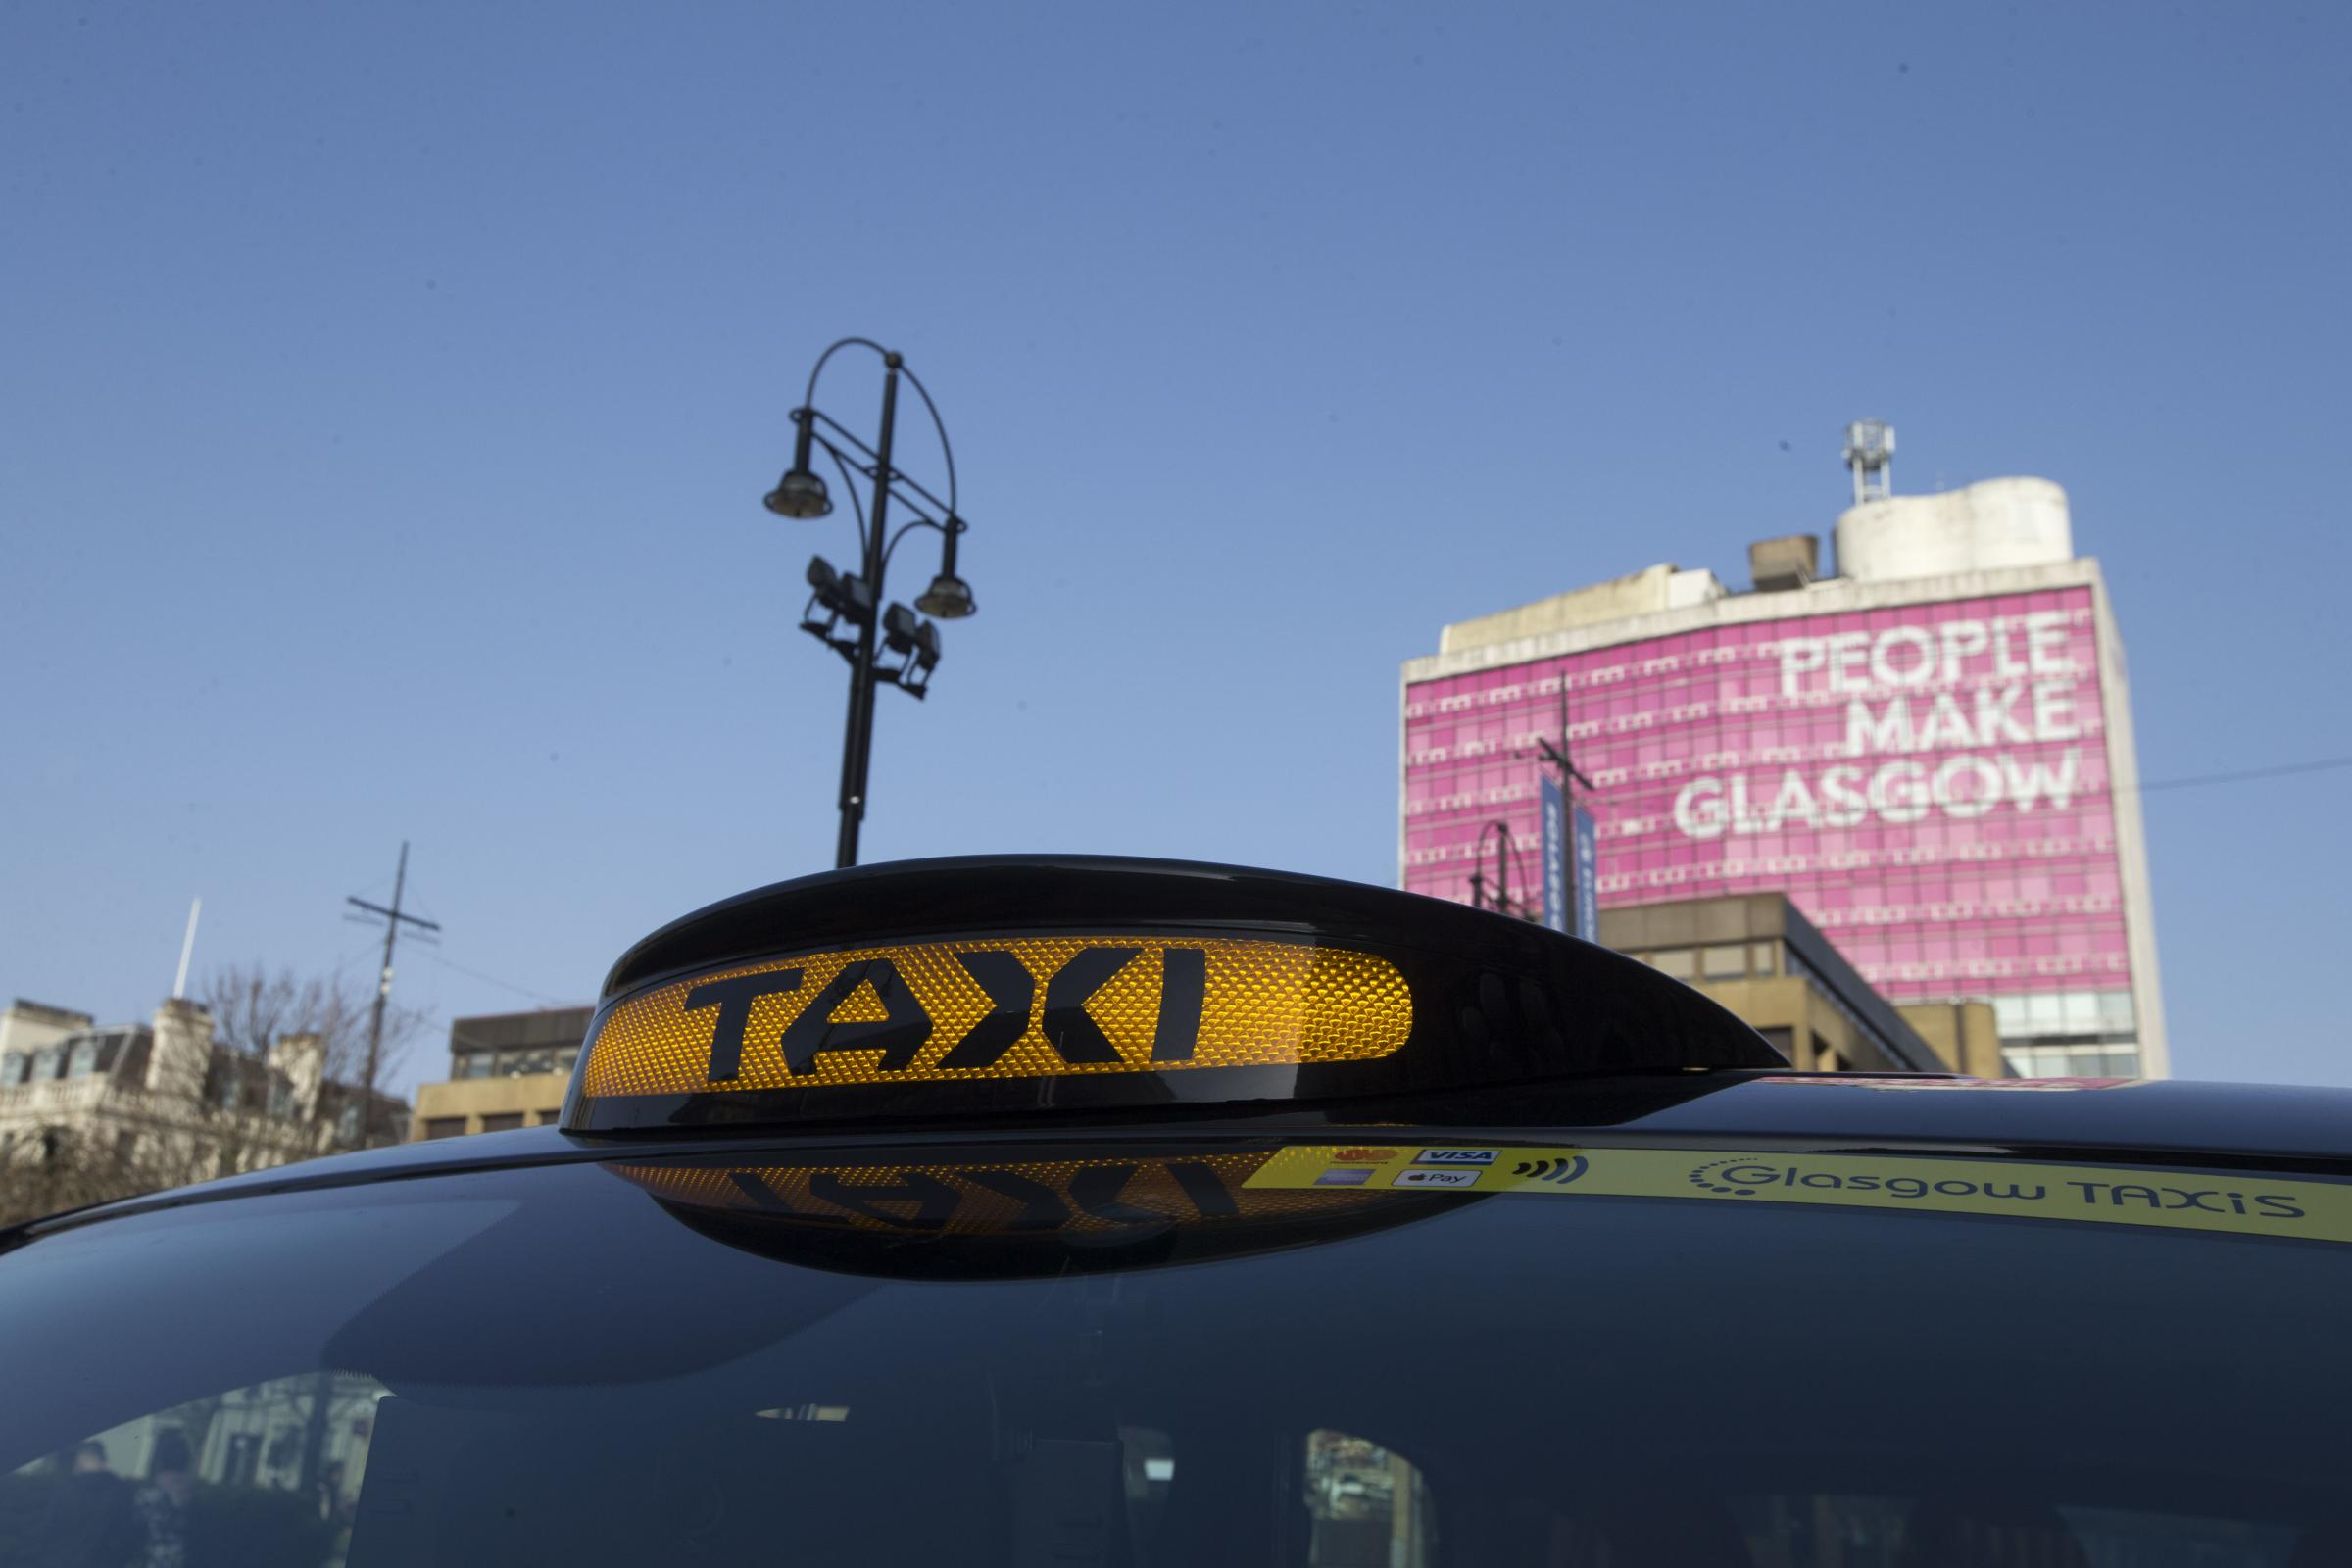 Glasgow City Council discuss how extra funding can be sourced for city taxi drivers